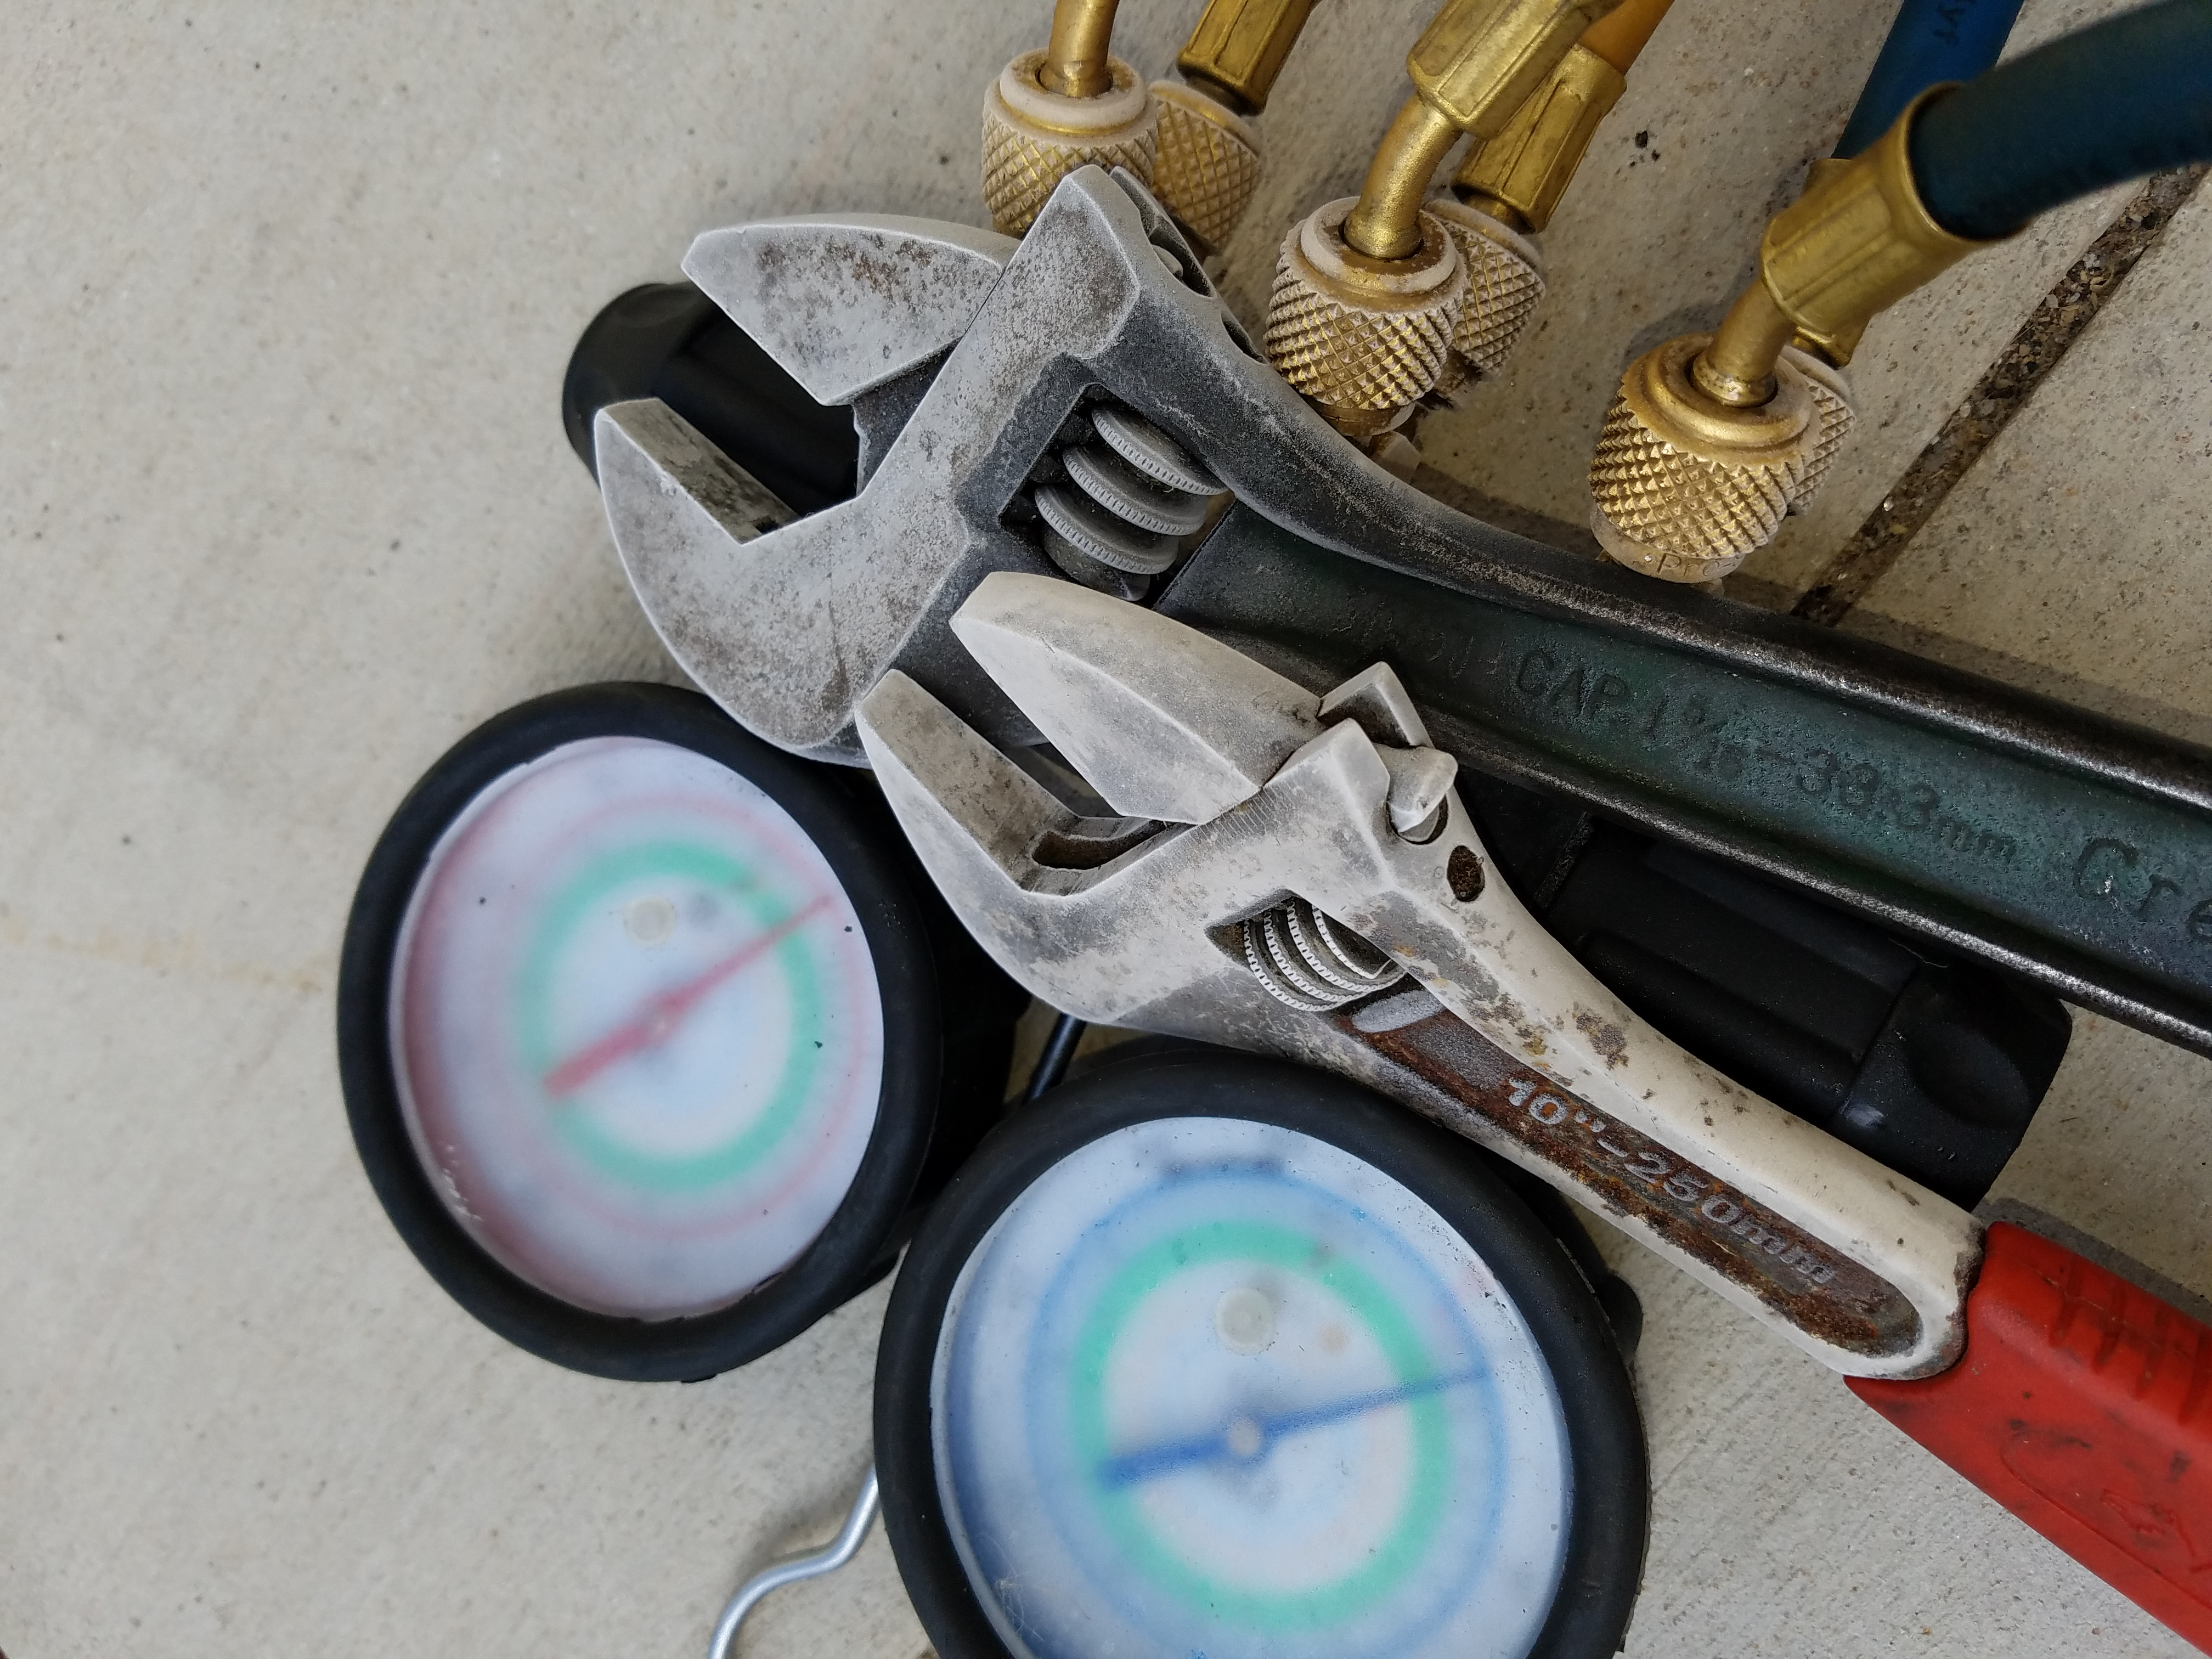 Residential and Commercial Maintenance Contractor in Venice, FL